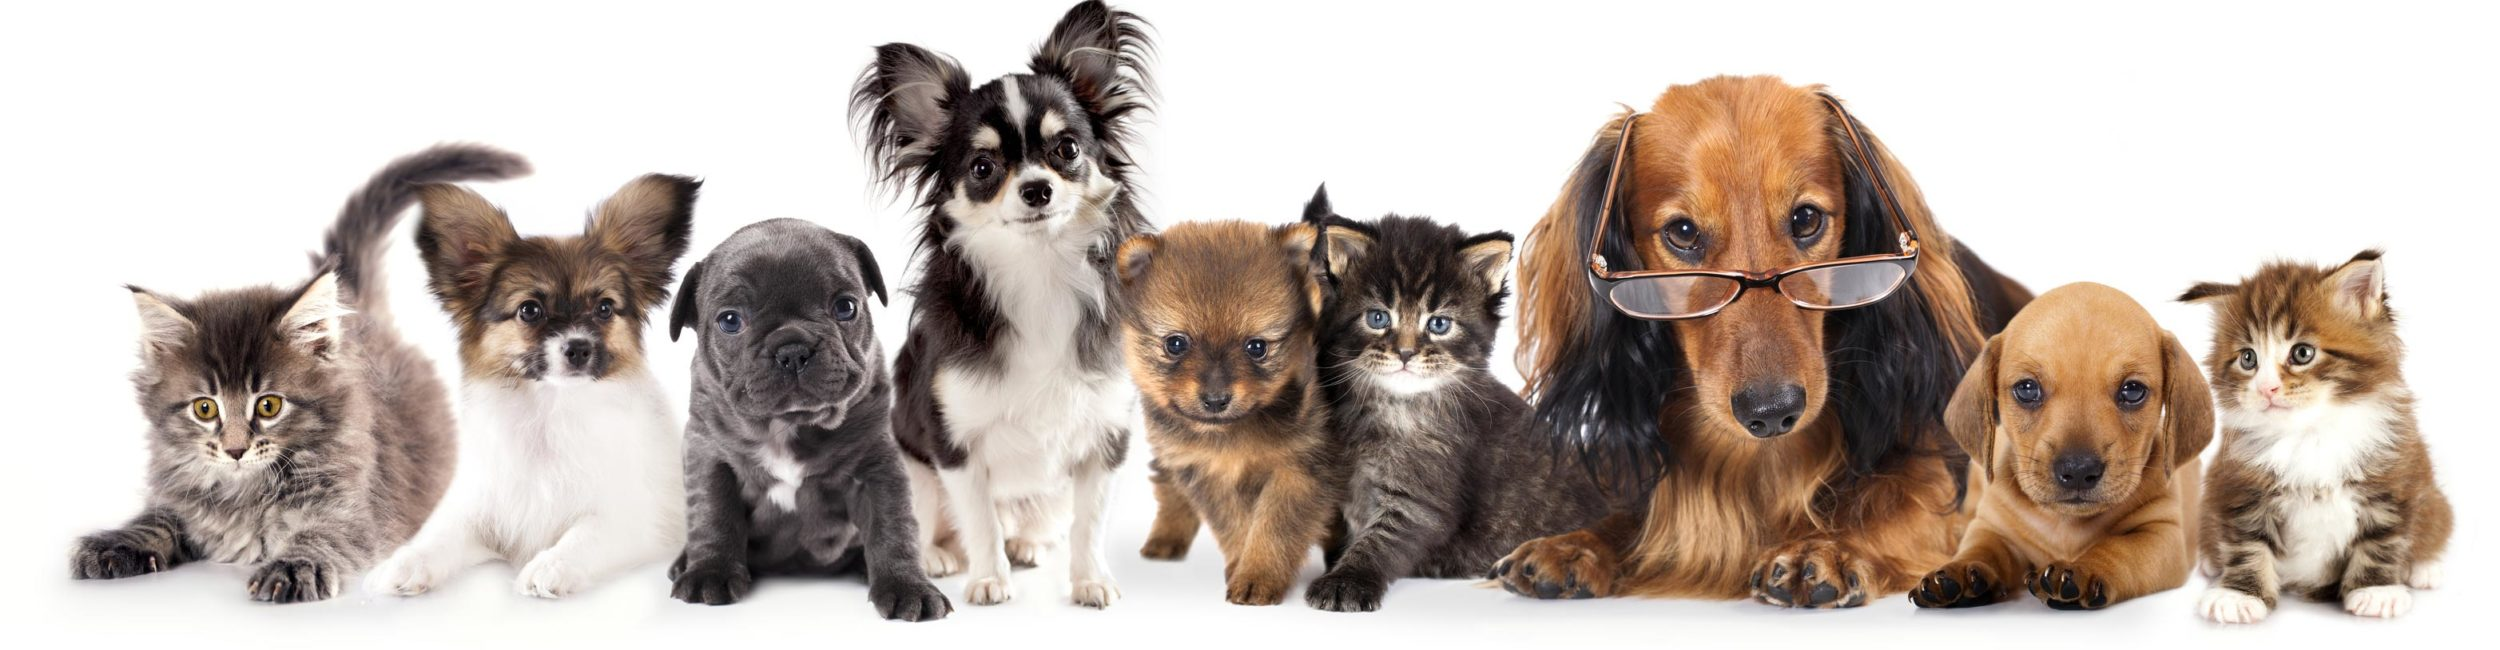 doggyscool-chiens-studieux-web